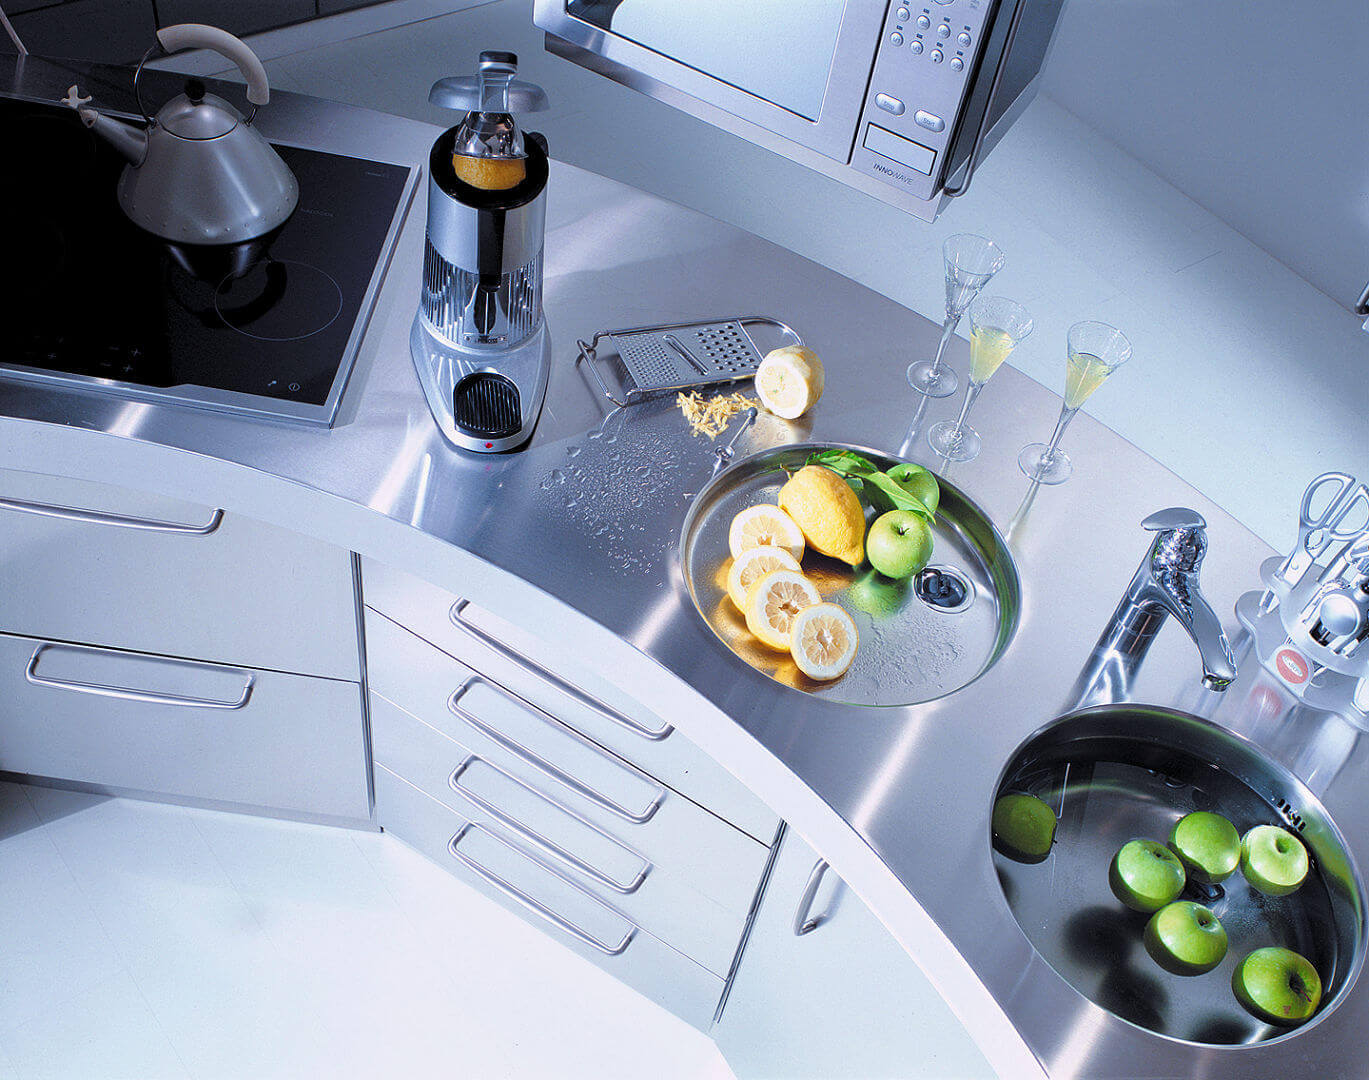 Arca Cucine Italy - Domestic stainless steel kitchens - Venus - Double Hot Dry Zone